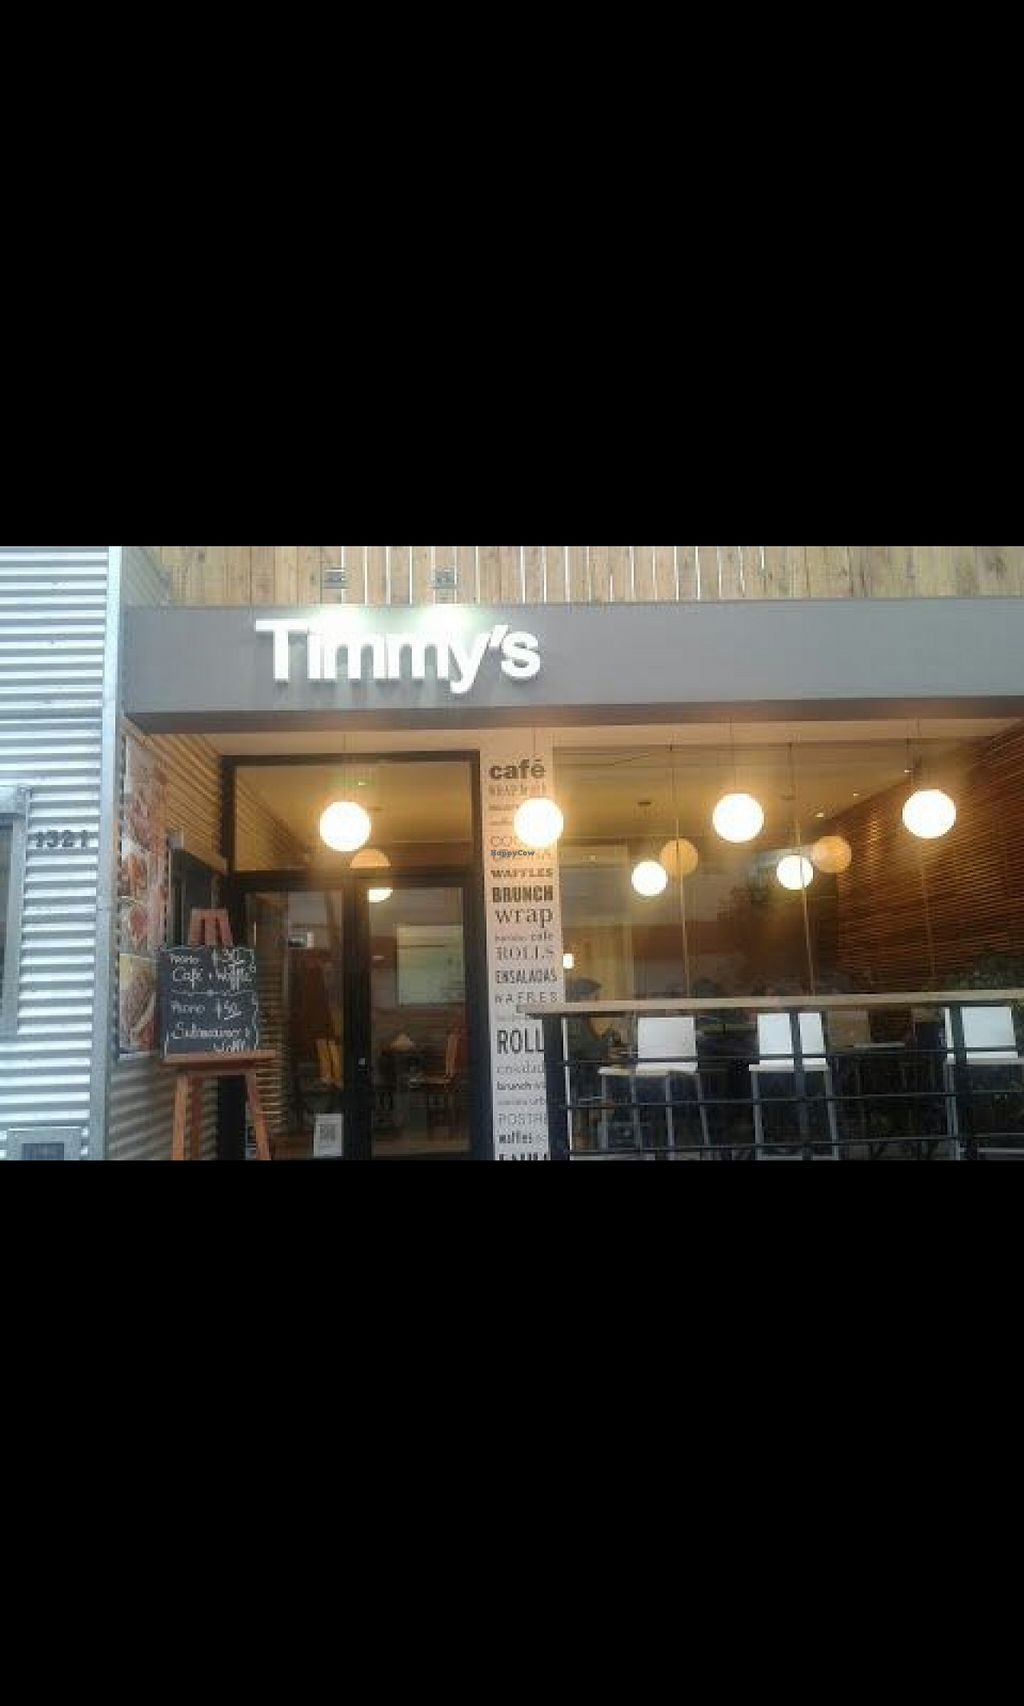 """Photo of Timmy's  by <a href=""""/members/profile/PauLis"""">PauLis</a> <br/>Timmy's in Güemes neighbourhood, Mar del Plata <br/> January 8, 2016  - <a href='/contact/abuse/image/68054/131527'>Report</a>"""